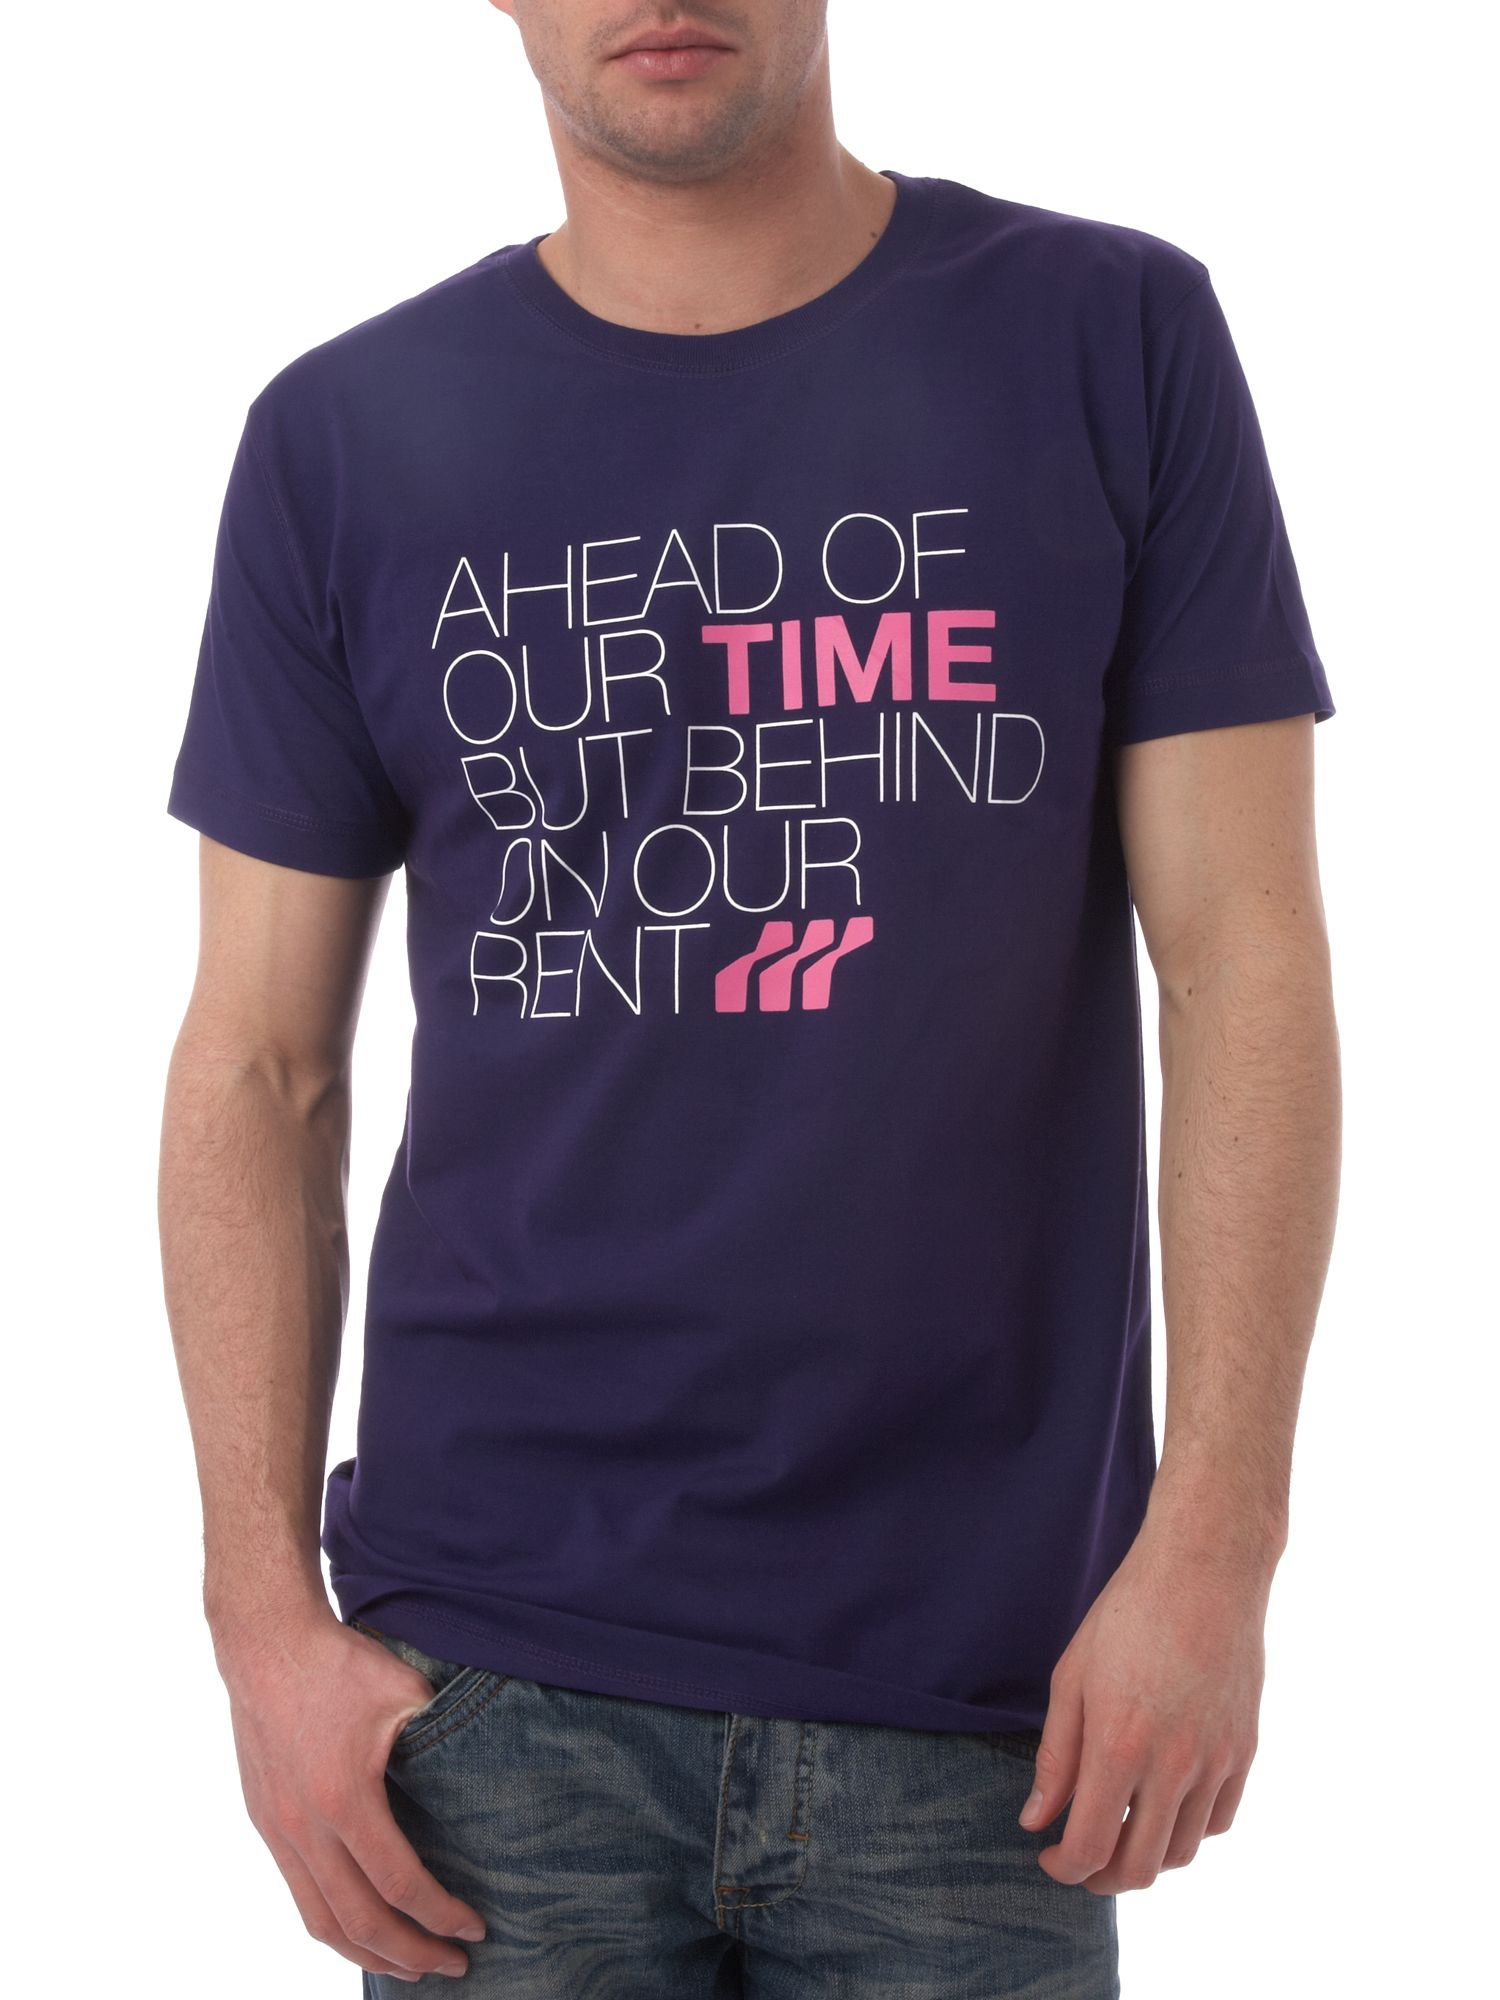 Ahead of our time printed T-shirt